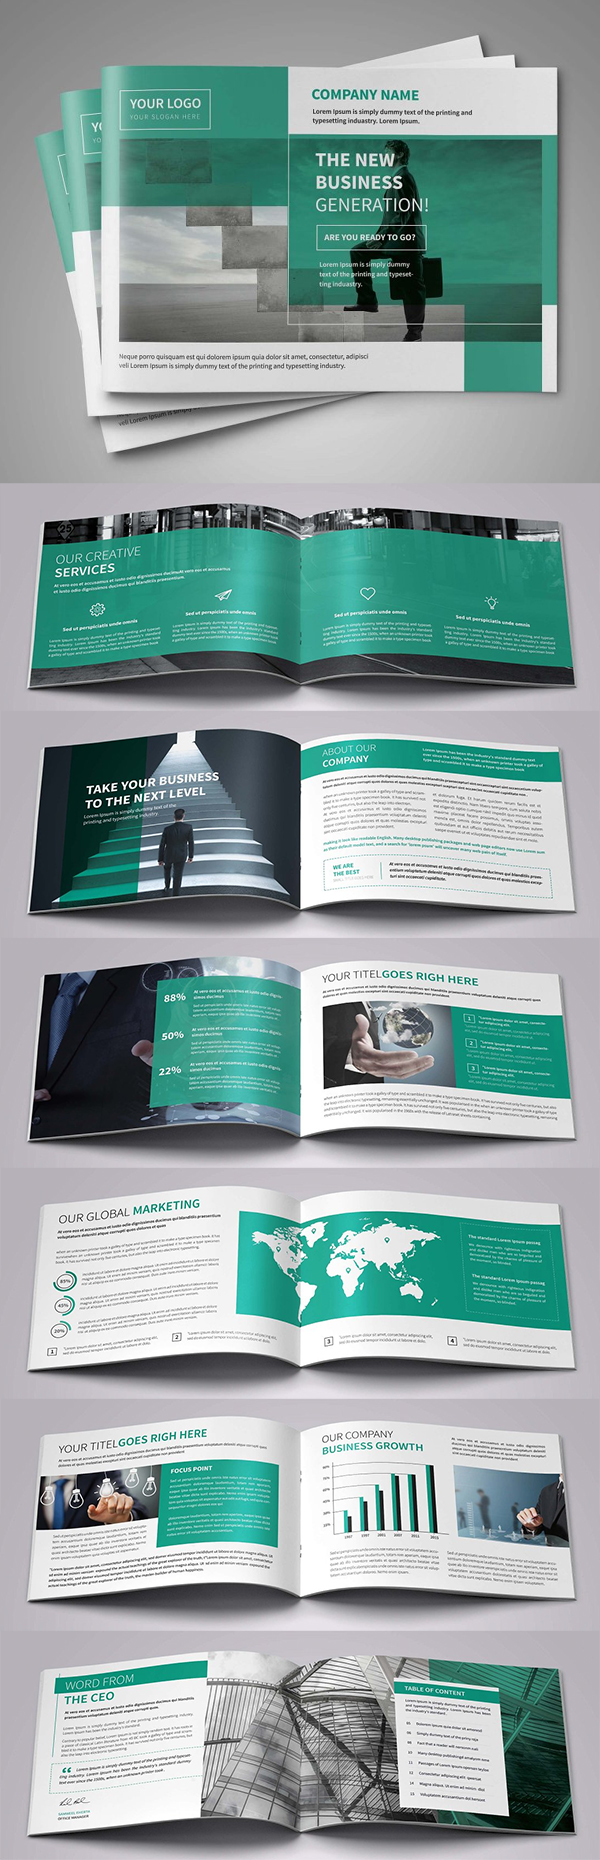 A5 Awesome Business Brochure Template